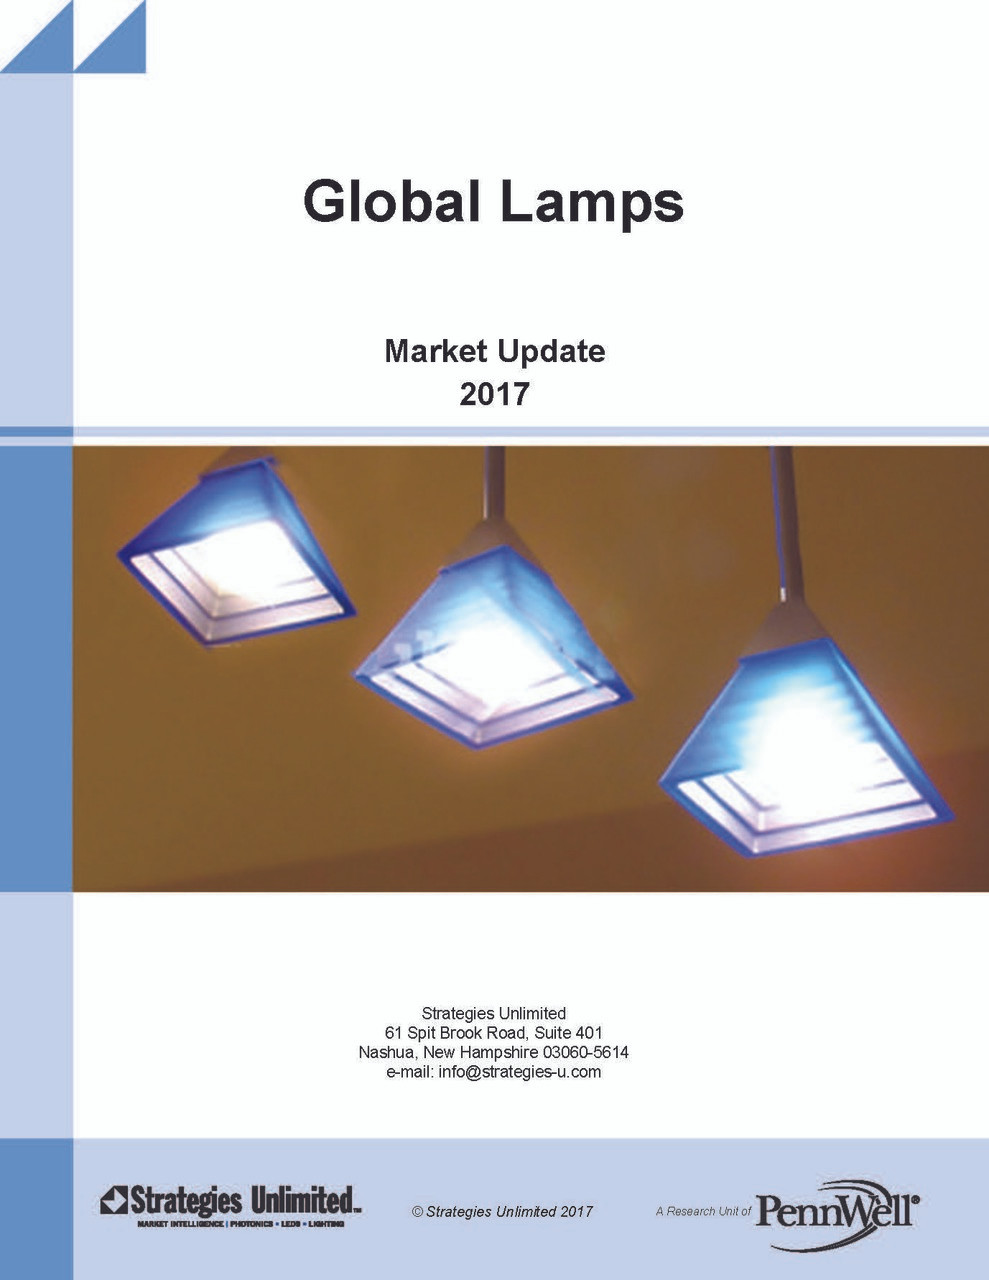 Global Lamps Market Update And Forecast 2017 Strategies